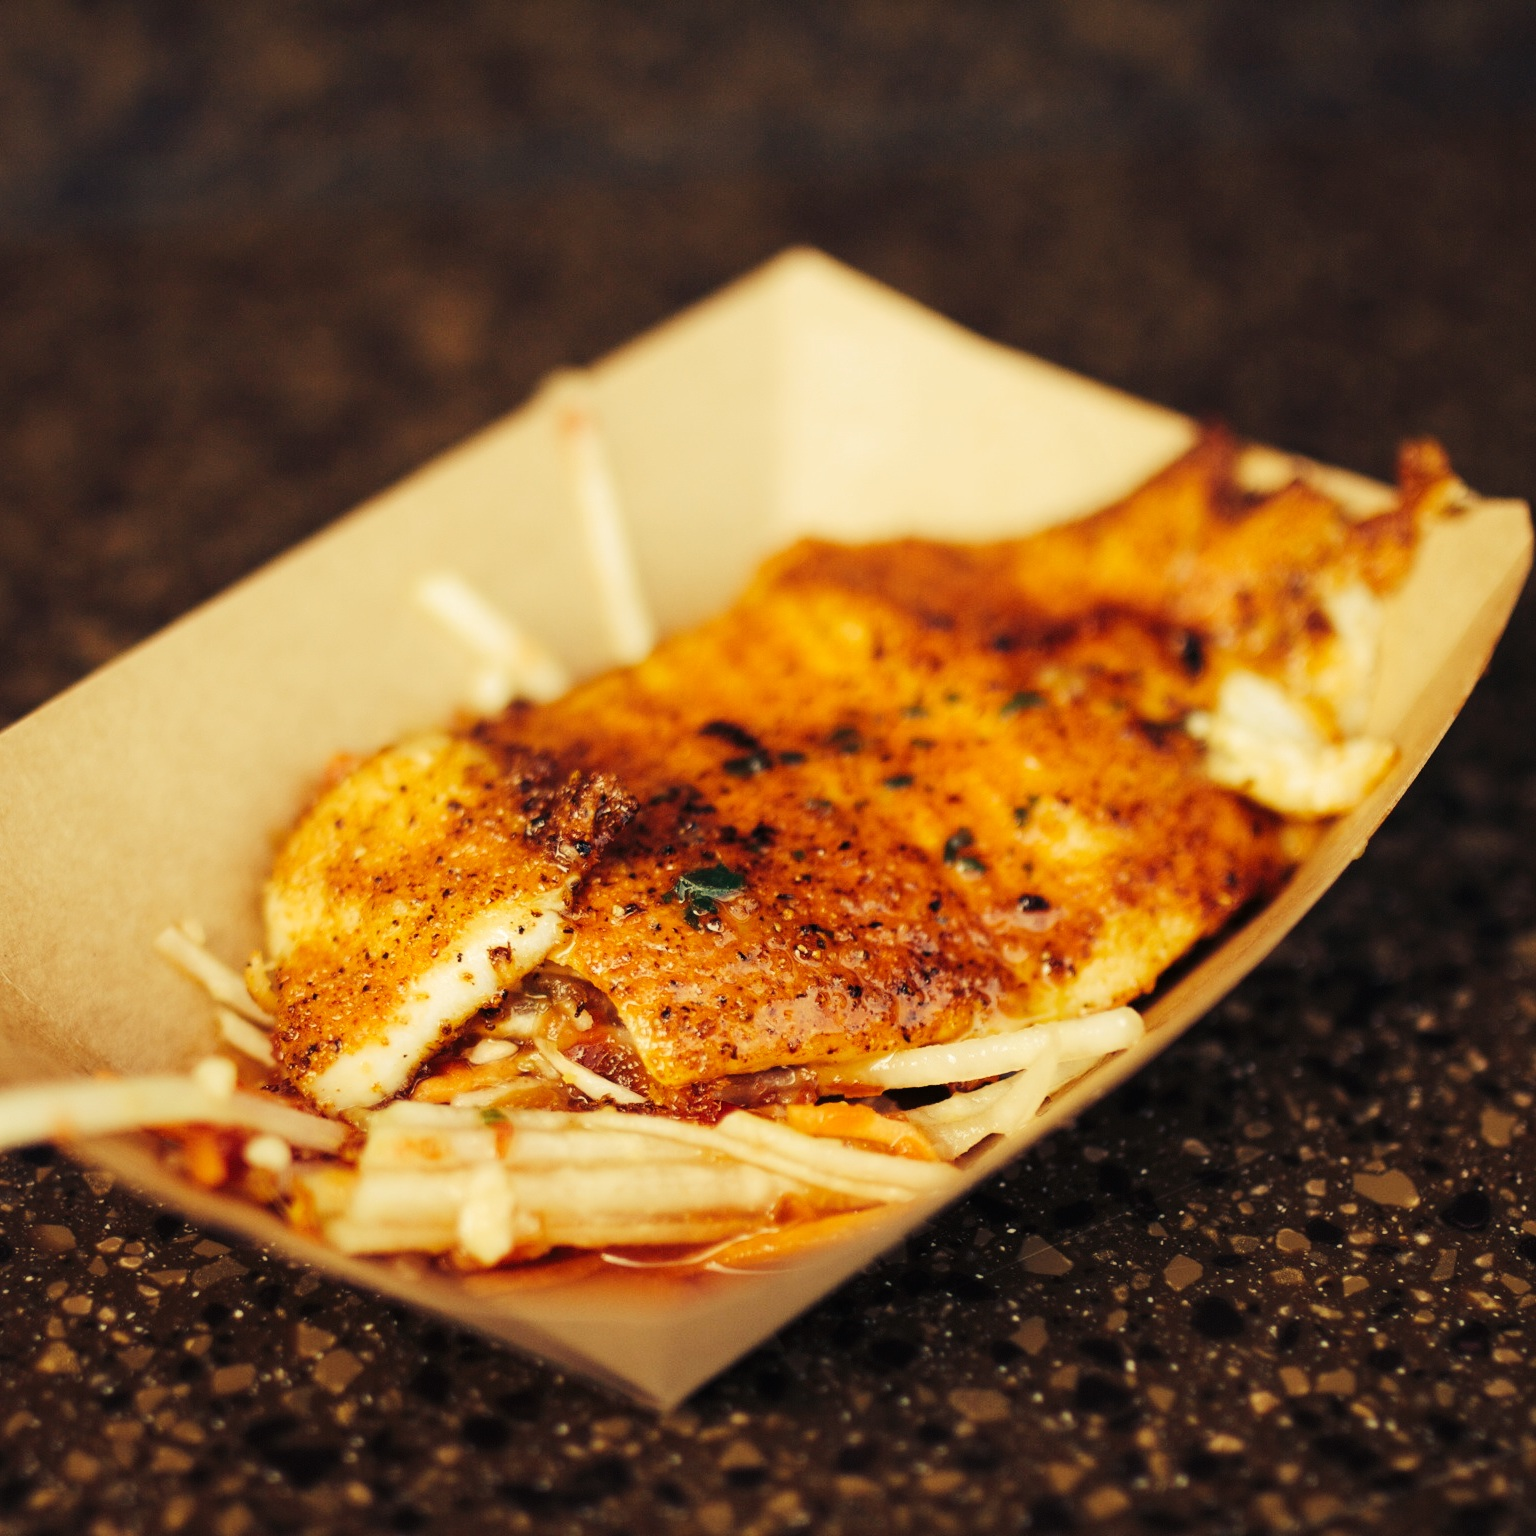 The Epcot International Food & Wine Festival is one of my favorite events at Walt Disney World! At this year's Flower & Garden Festival, we tried the ghost pepper dusted talapia and it was outstanding! I'm hoping some form of this dish makes an appearance at F&W. It's high on my list!